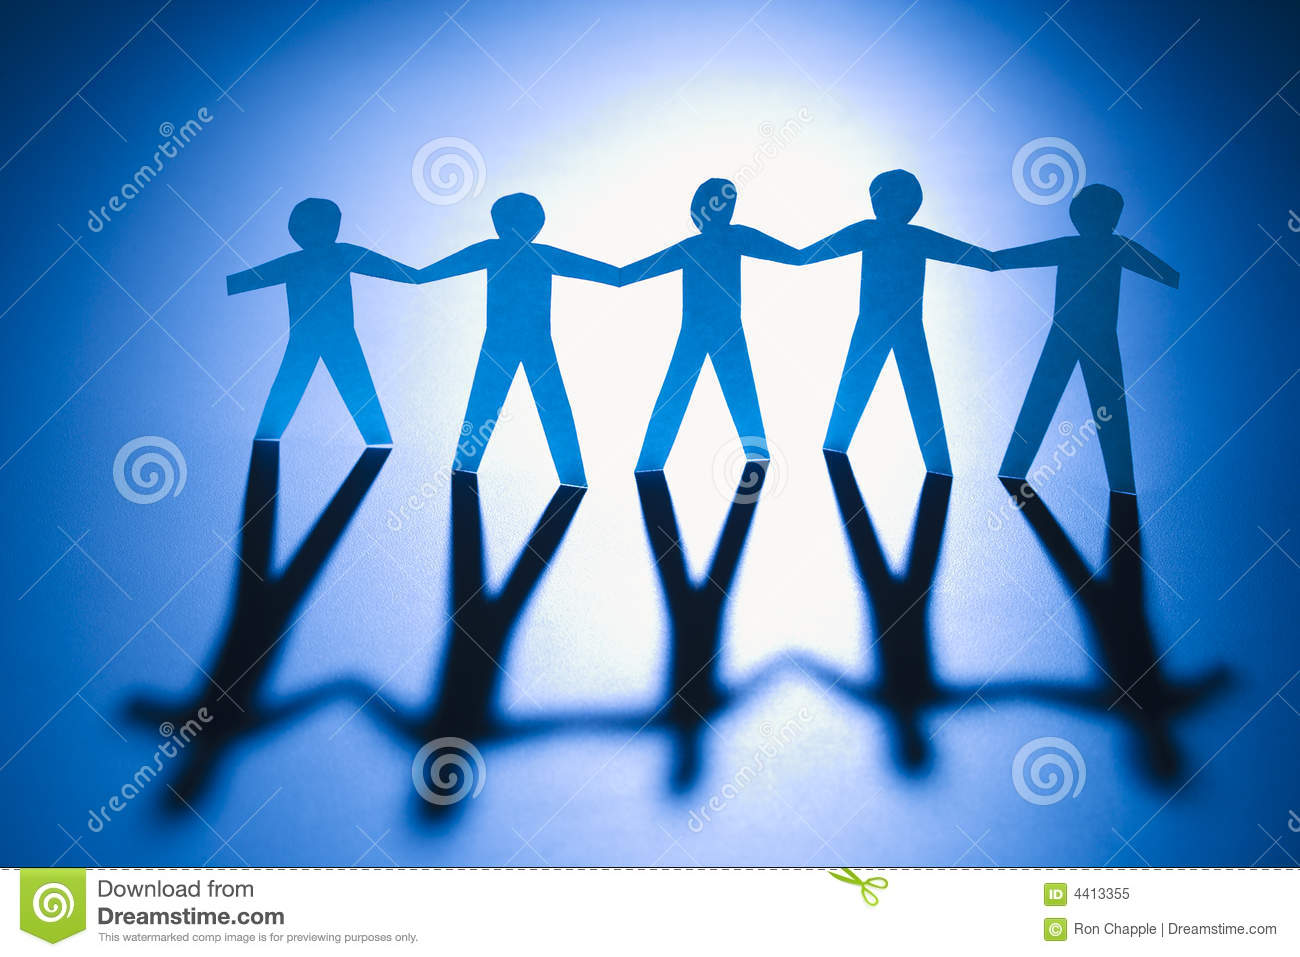 People Connected Royalty Free Stock Photo - Image: 4413355